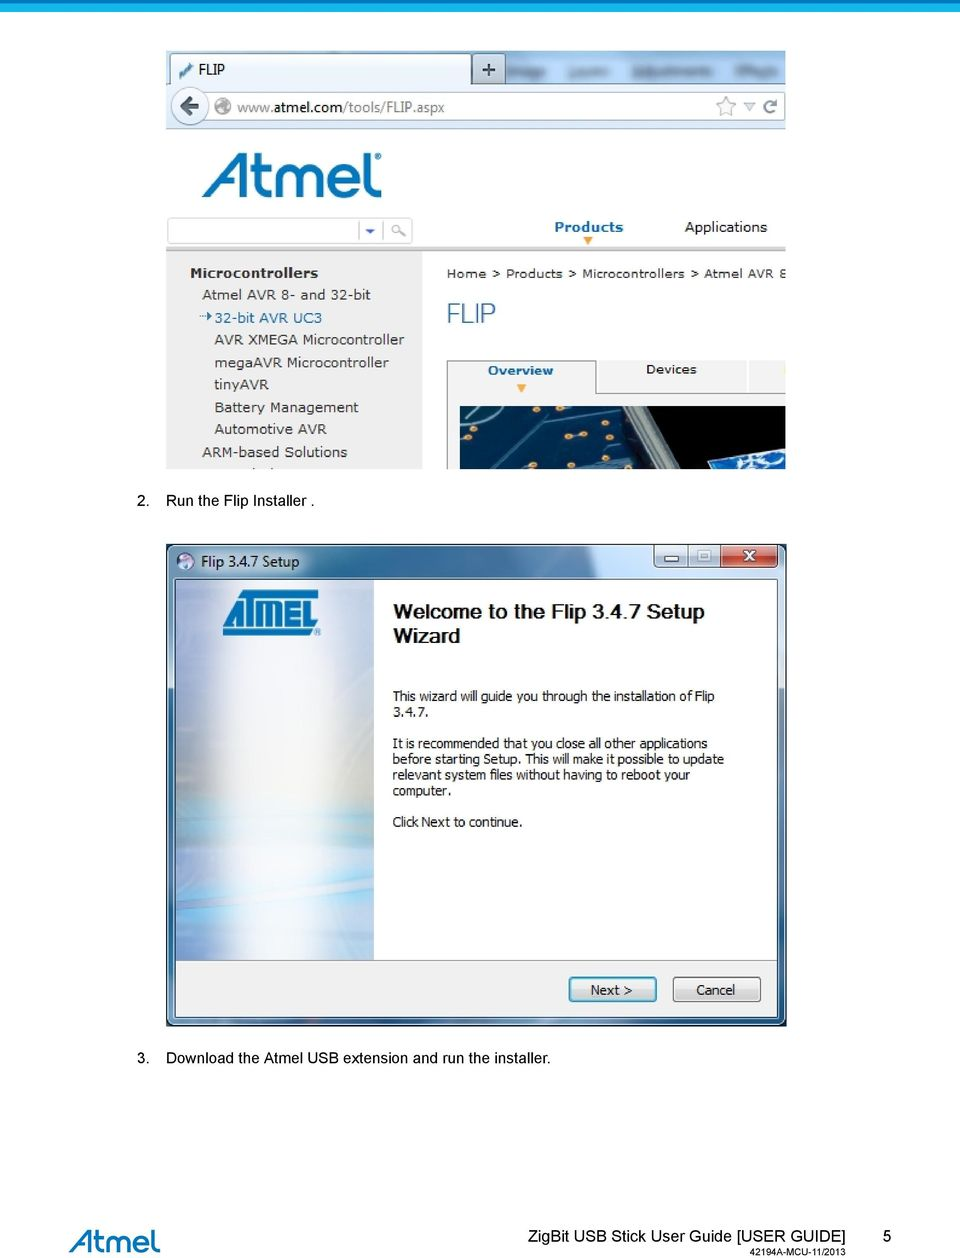 Download the Atmel